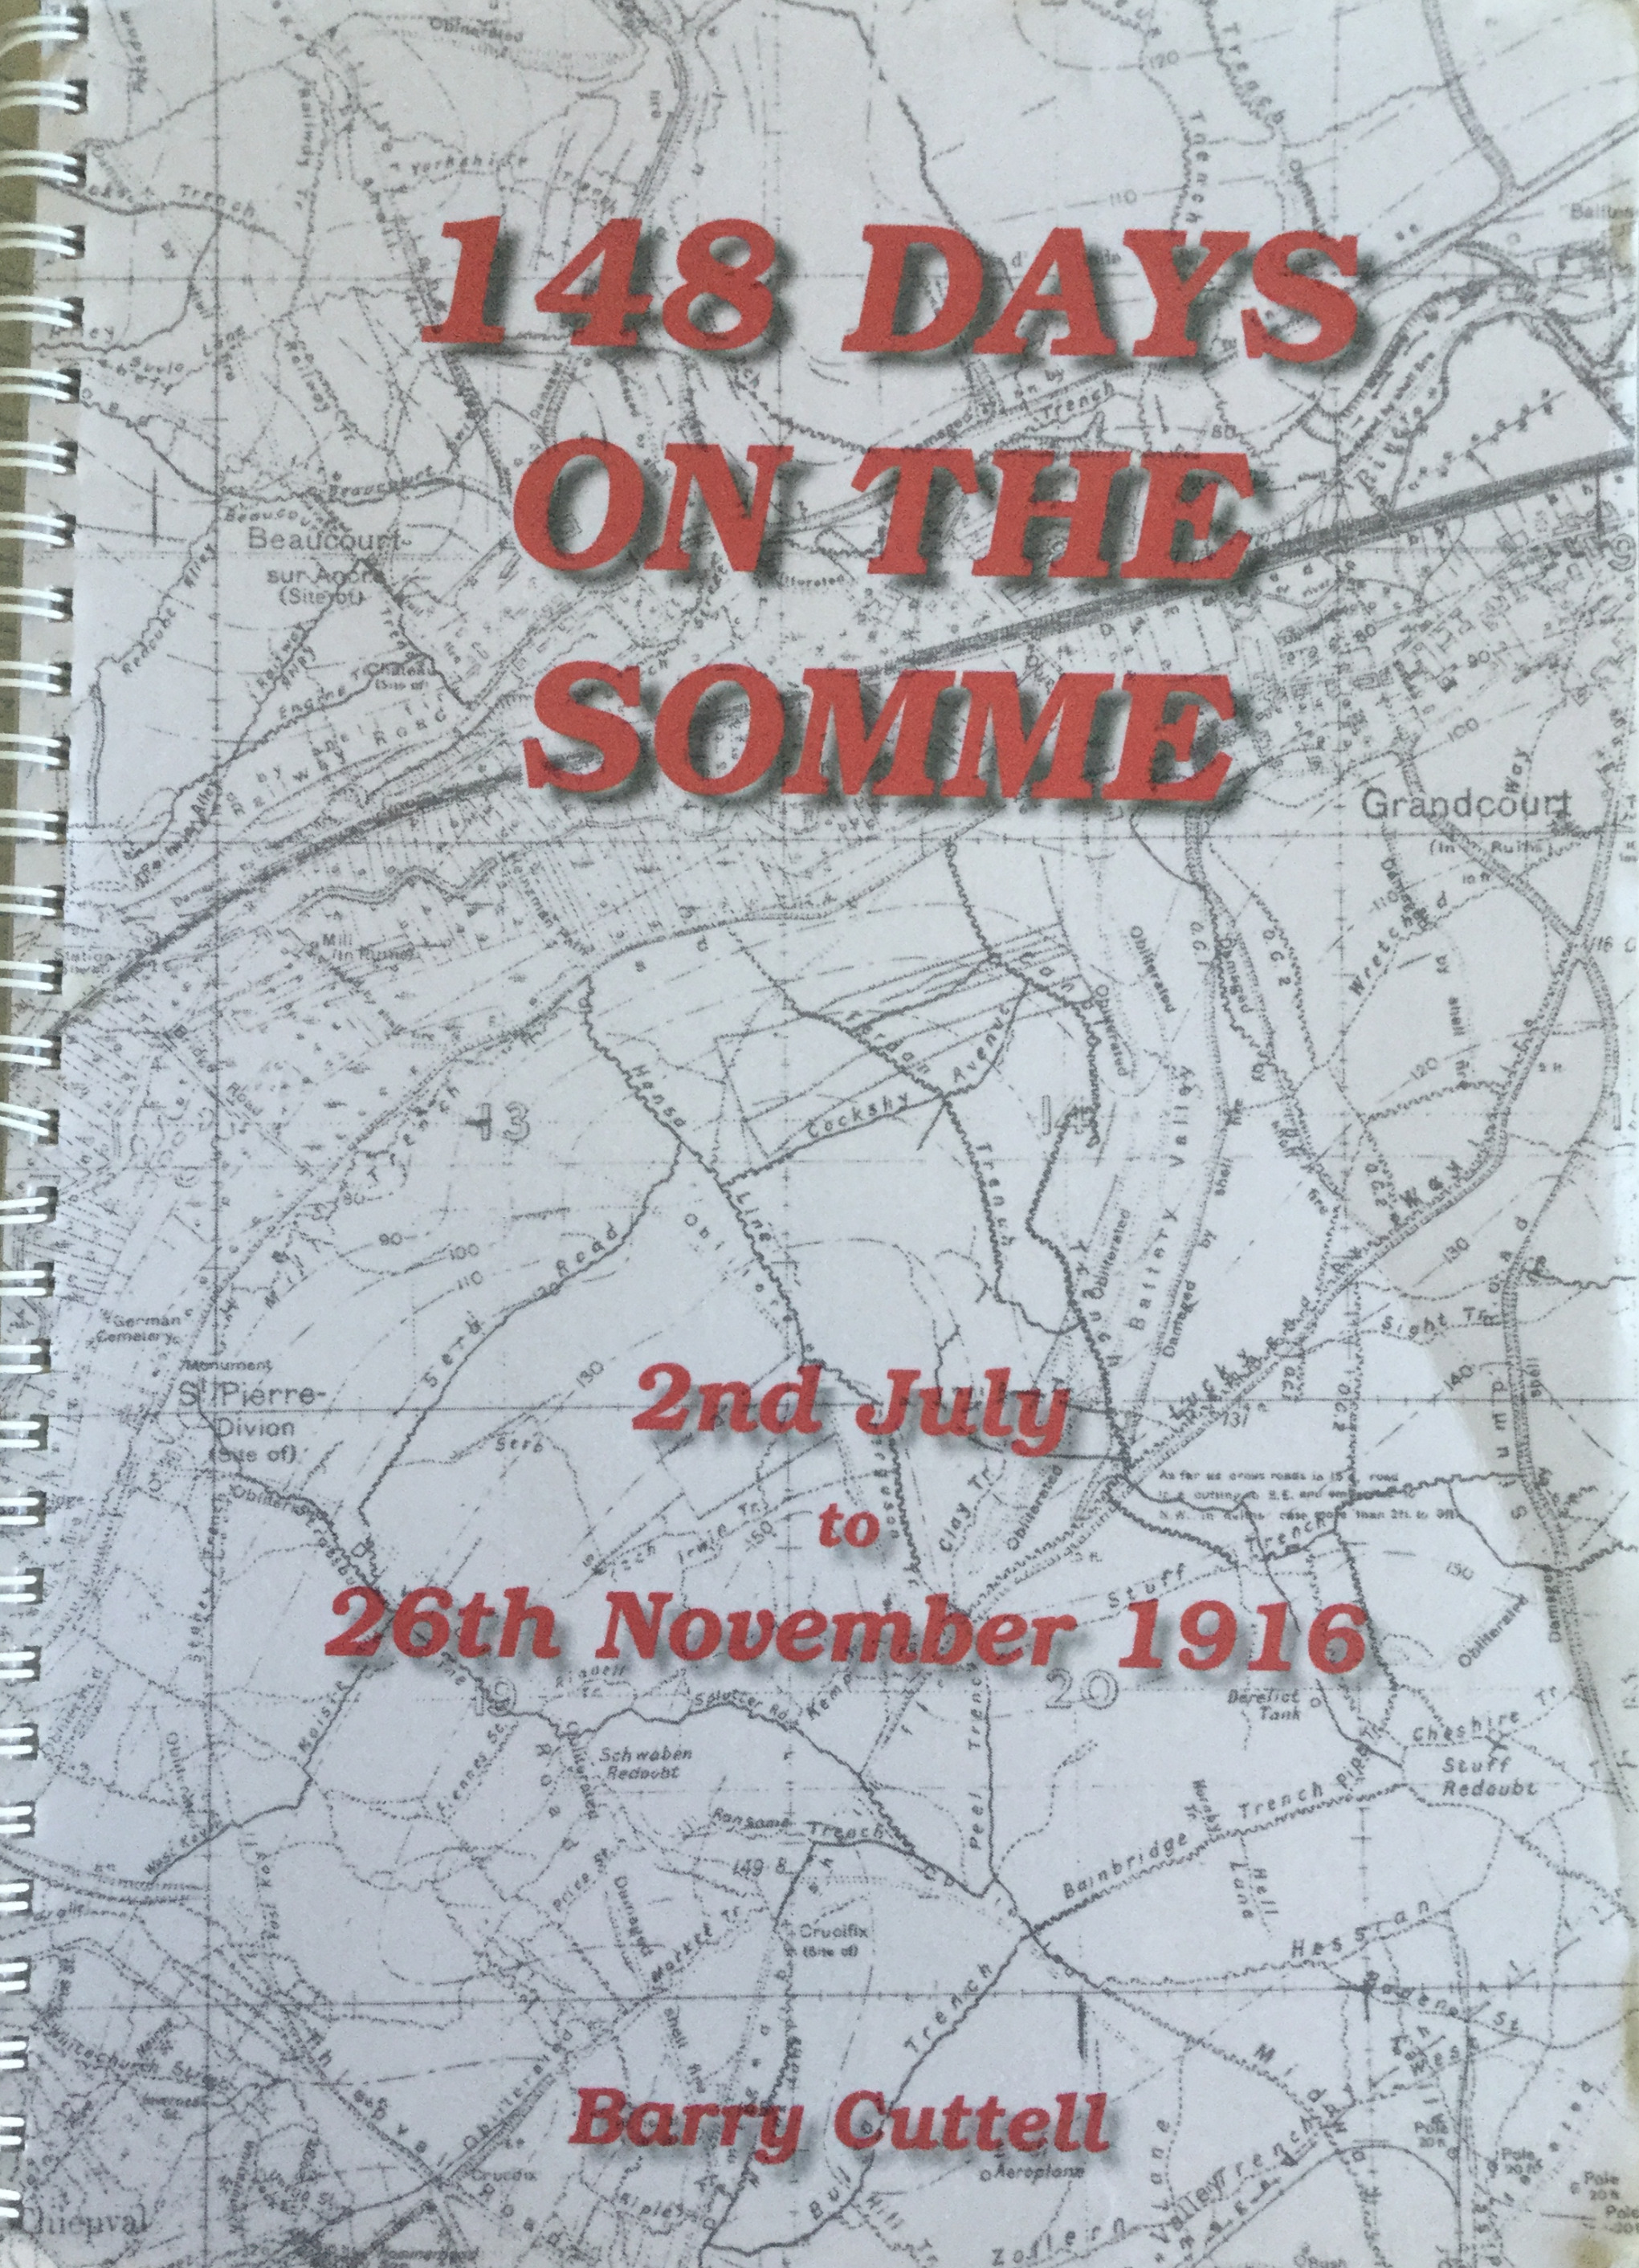 148 Days on the Somme